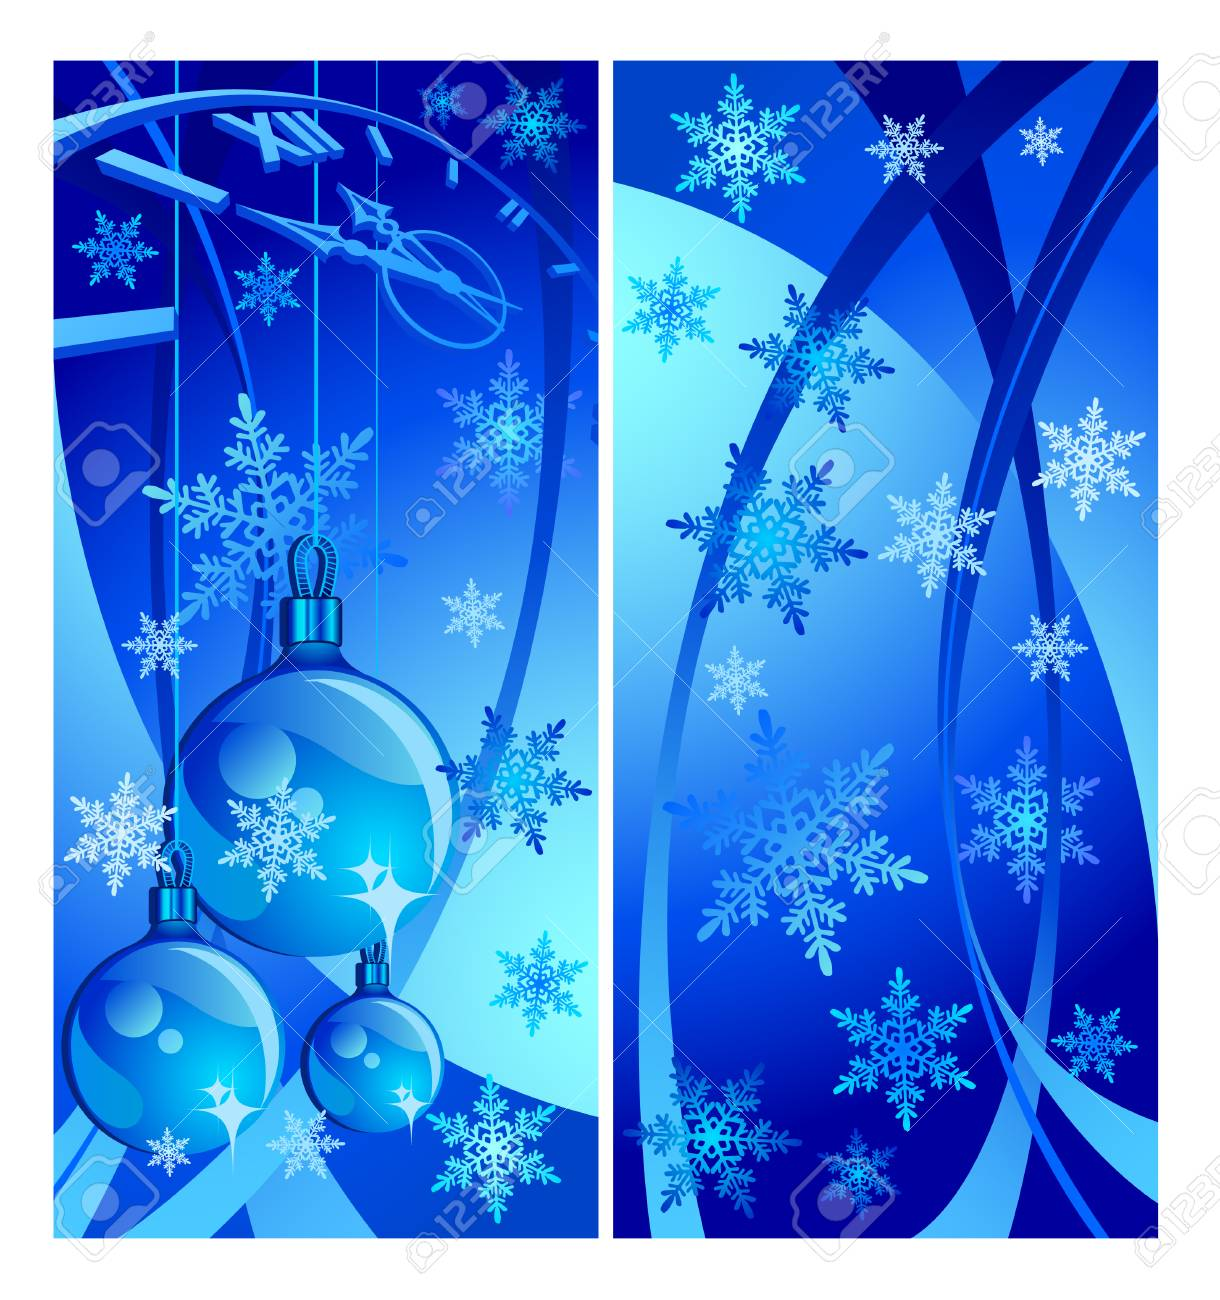 New year's card with clock, baubles, vector illustration in blue background Stock Vector - 4597896